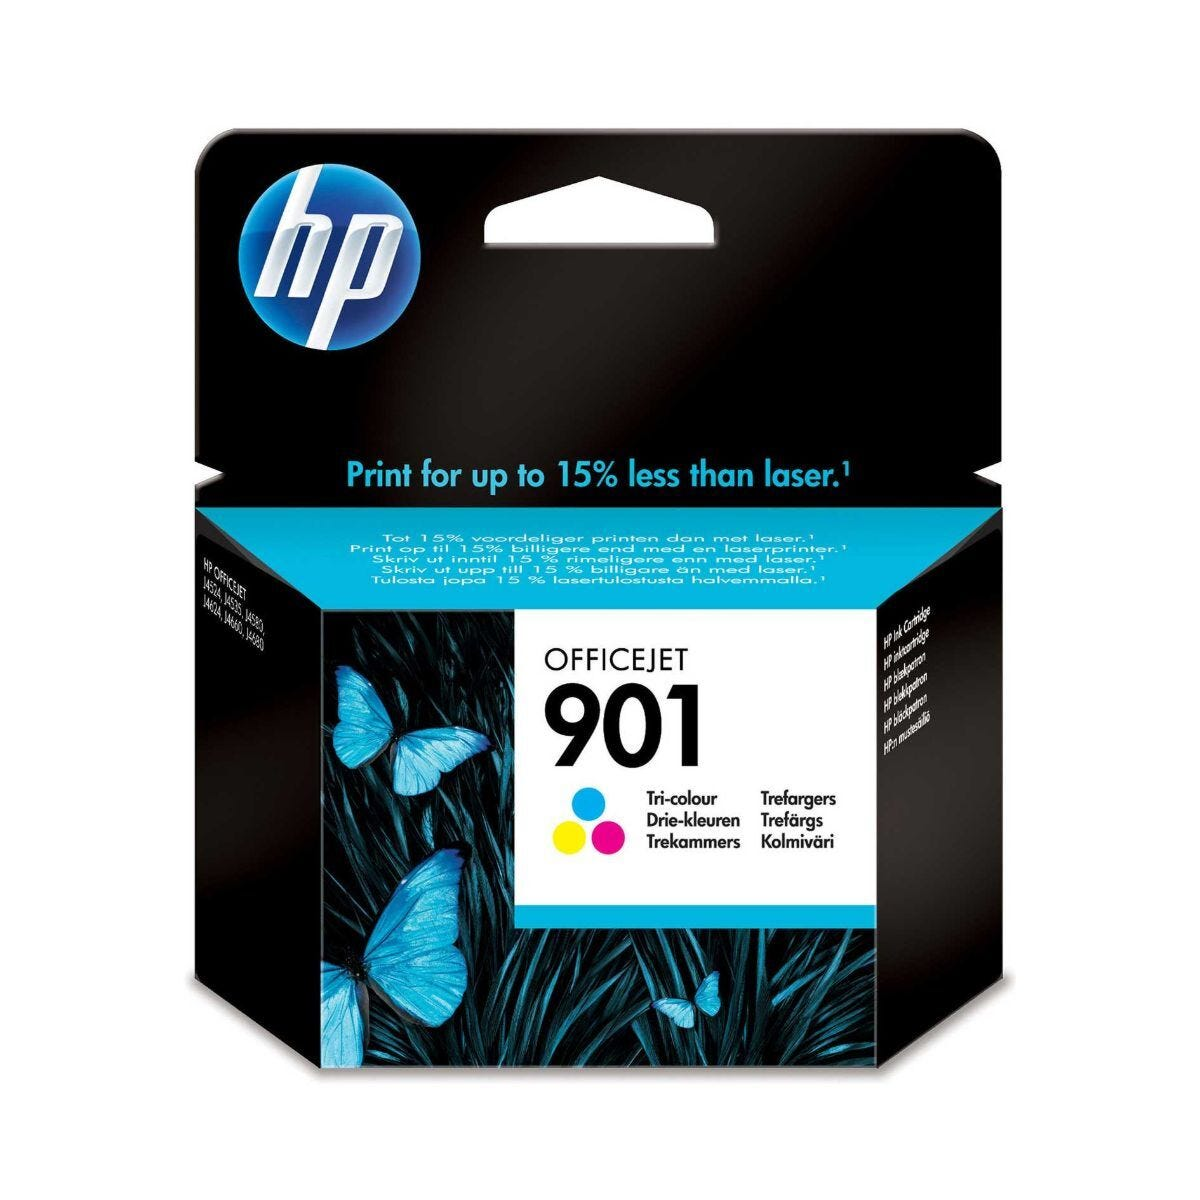 HP 901 Ink Cartridge 9ml